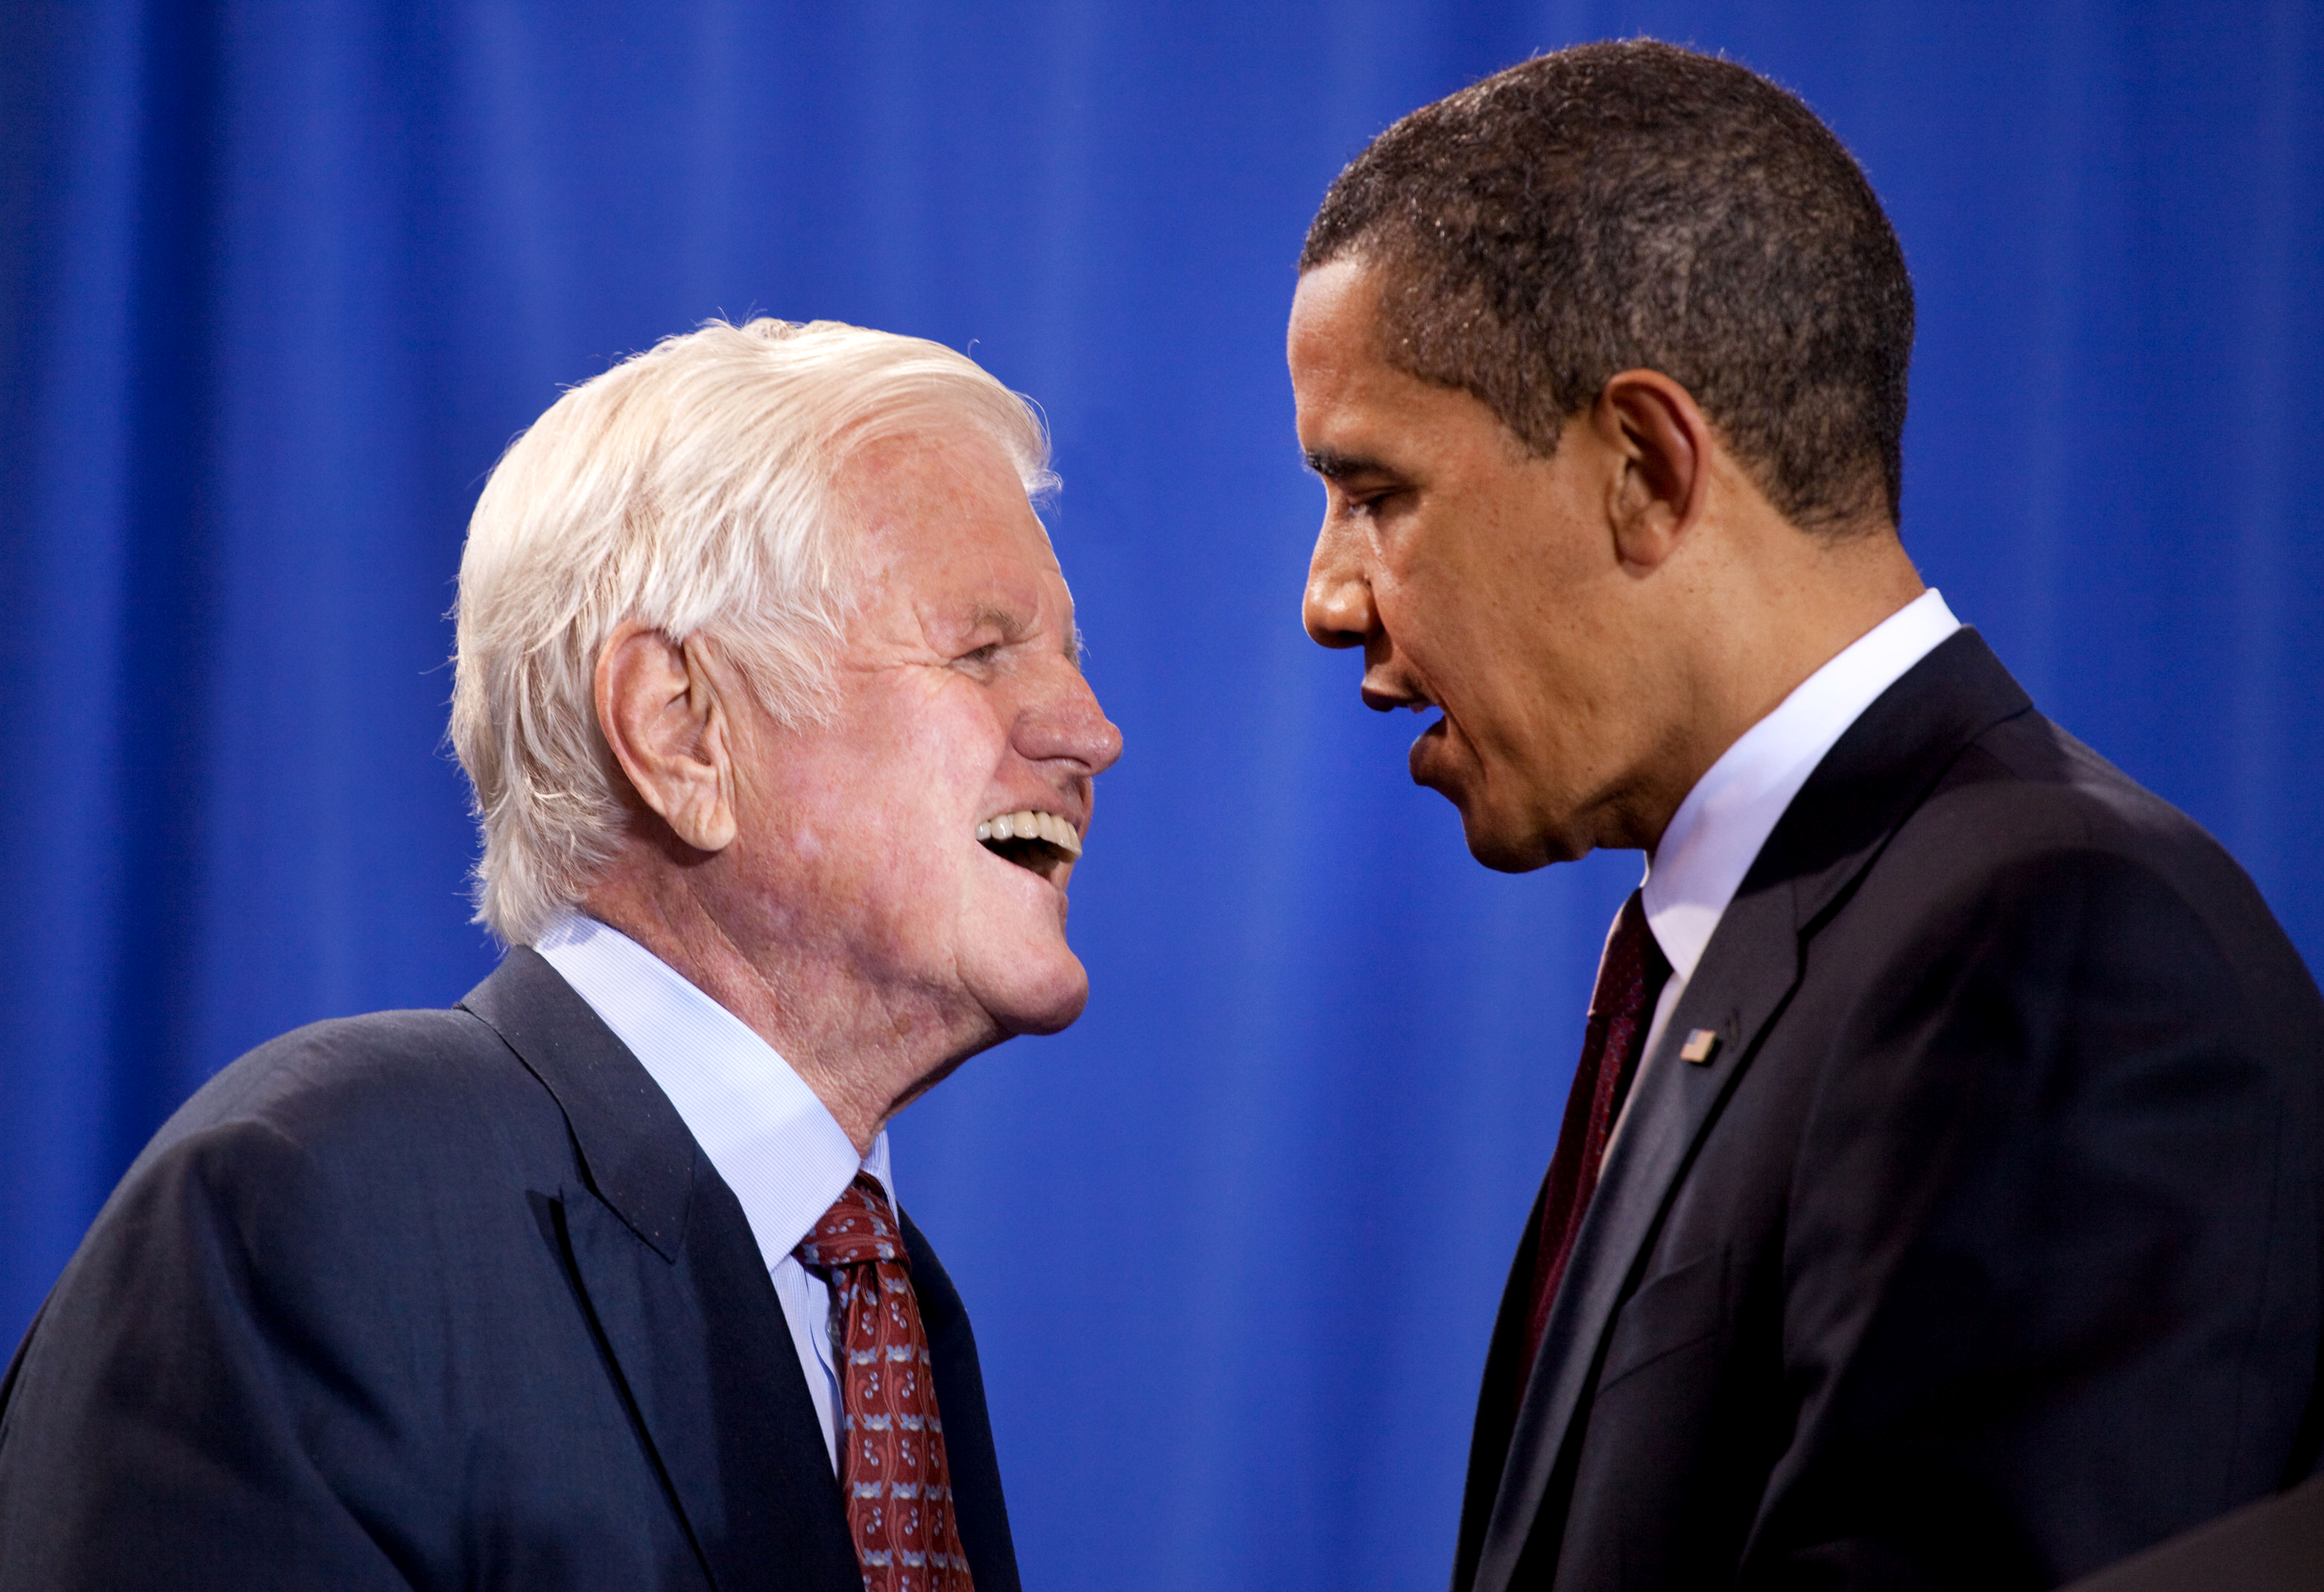 Ted Kennedy Institute Gushed Over By NYT, But Bush Library